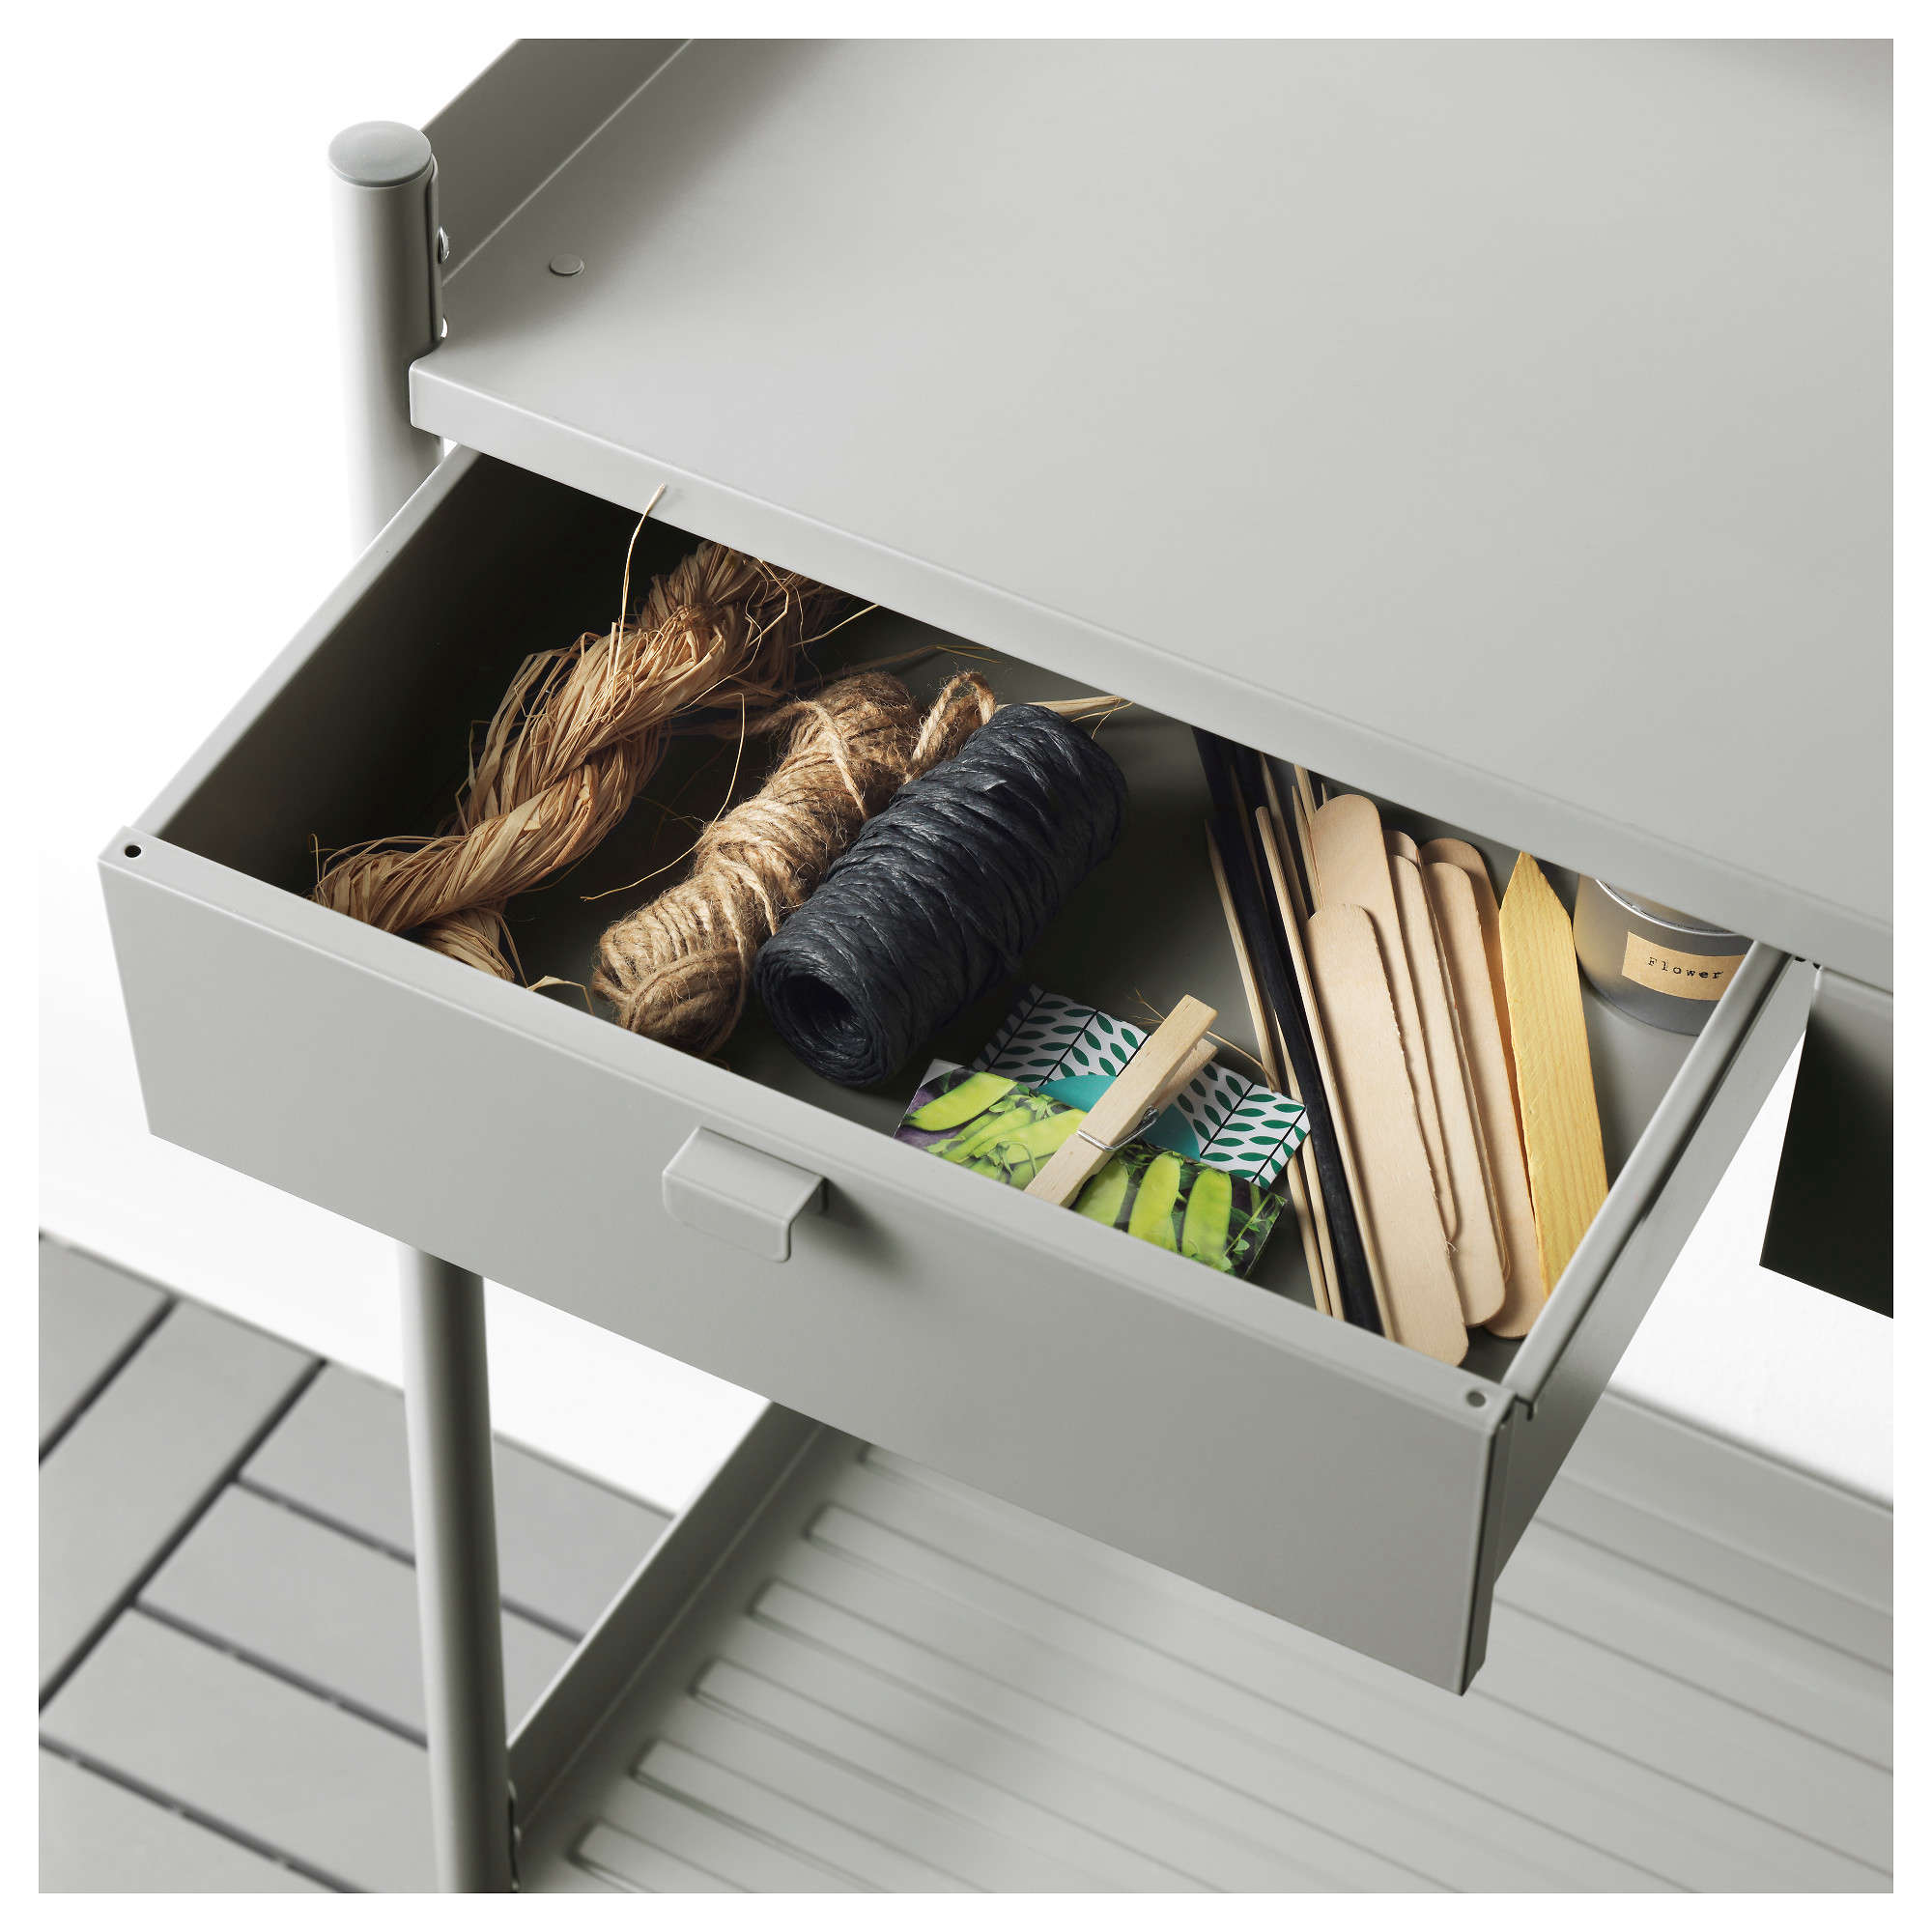 shed toy ideas of as together size with well storages sheds ikea organizer storage full basket